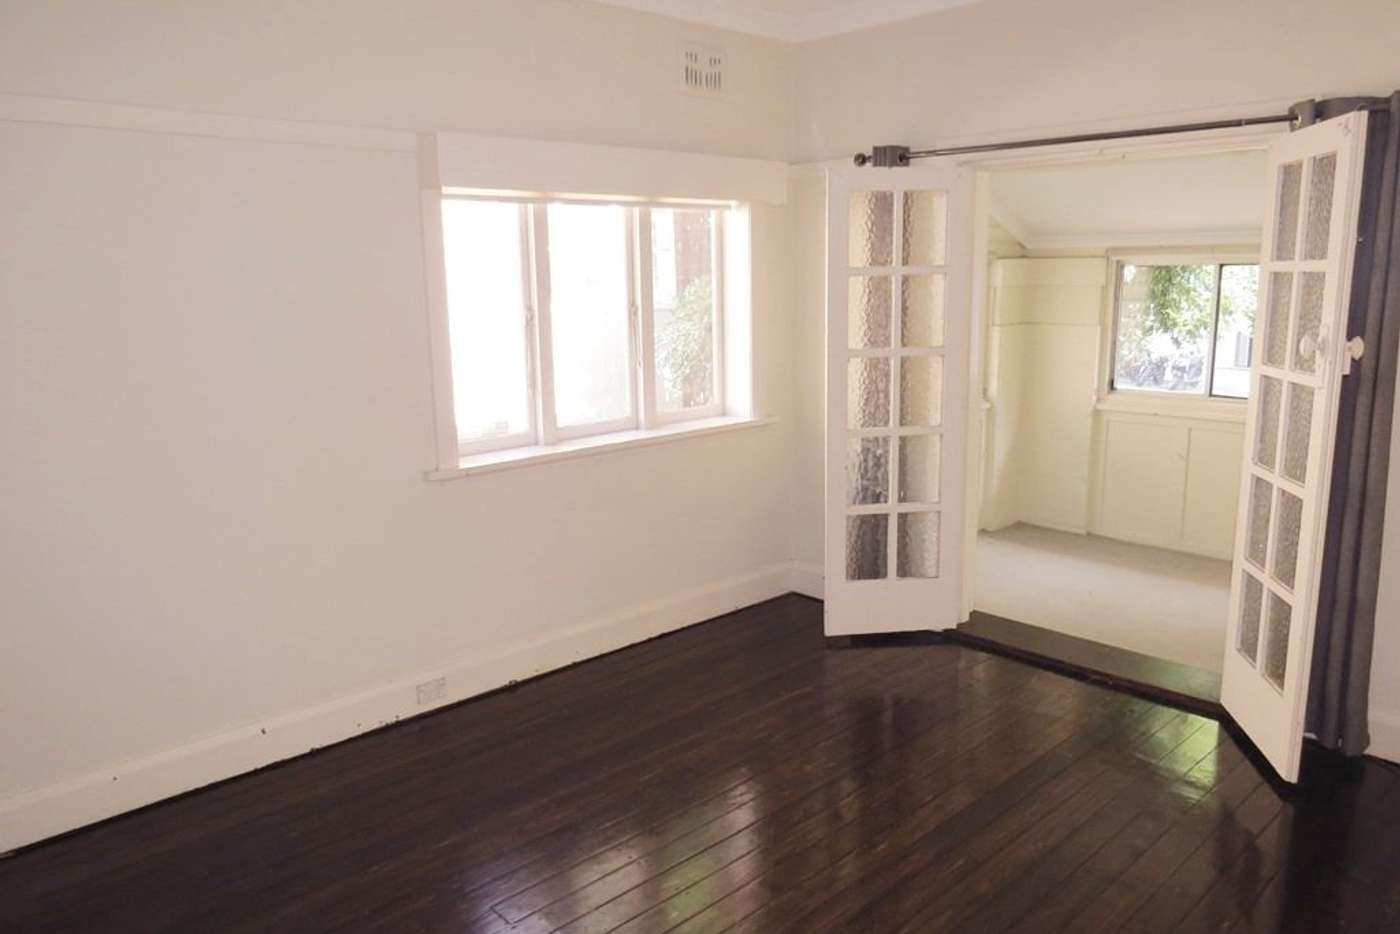 Main view of Homely apartment listing, 6/175 Walker Street, North Sydney NSW 2060